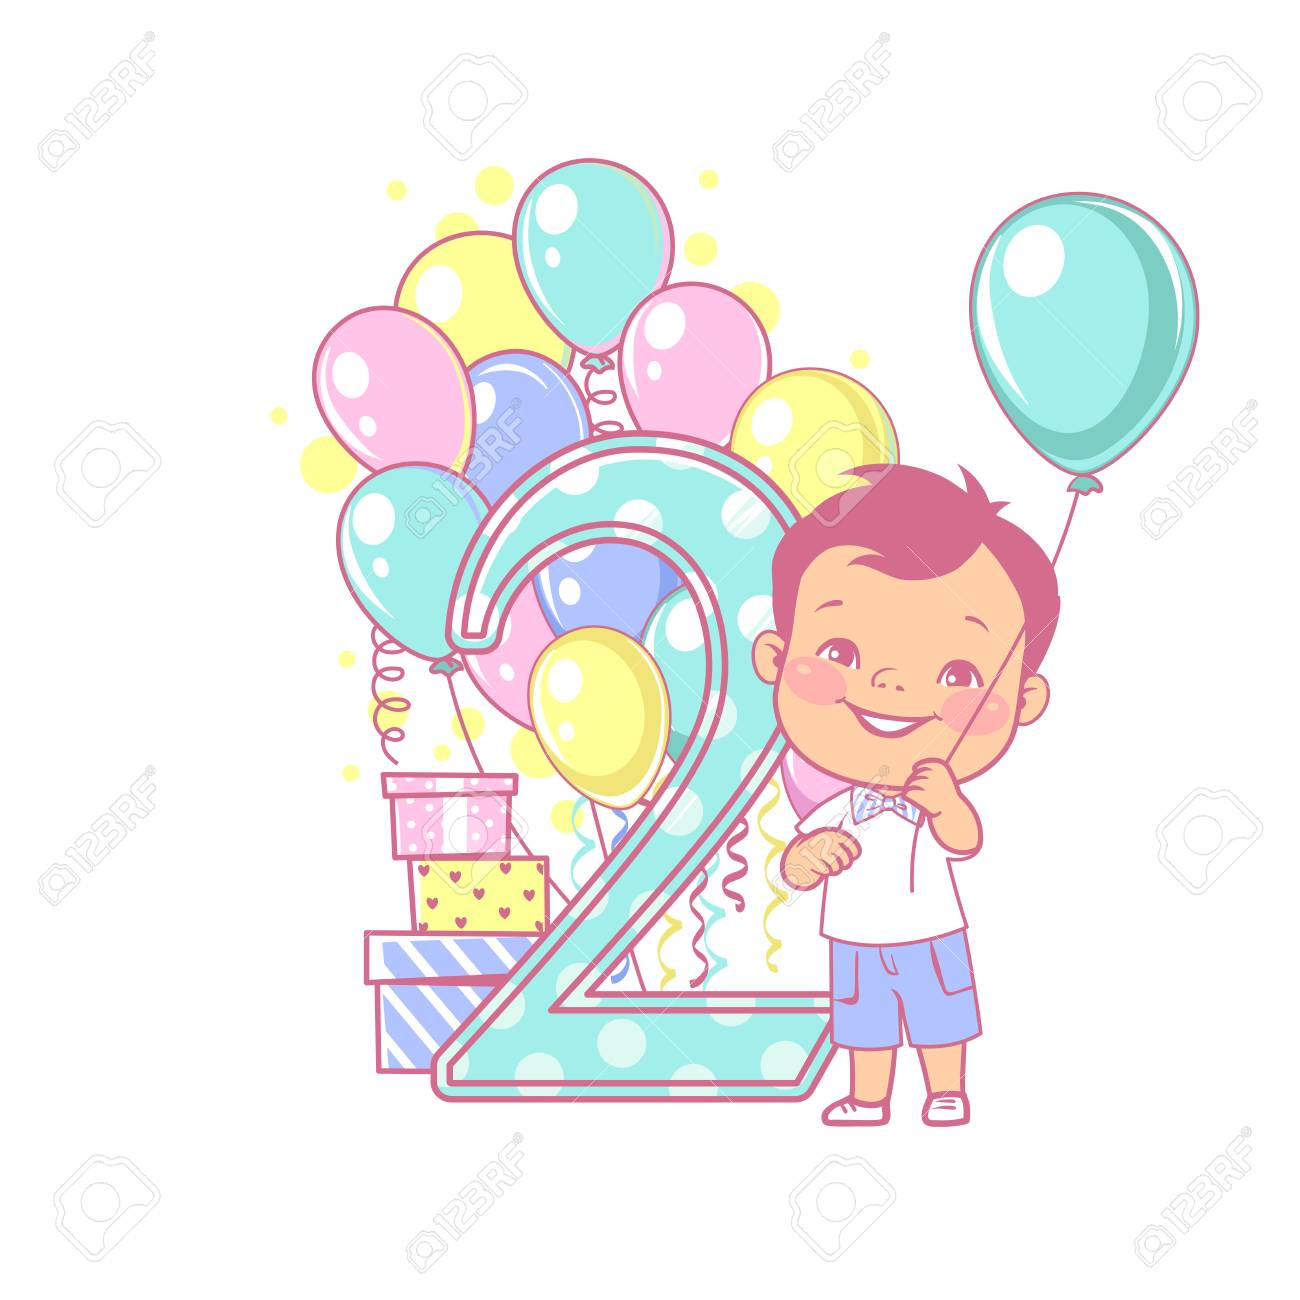 Two Years Old Boy Standing Near Large Number 2 Second Year Celebration Little Boys